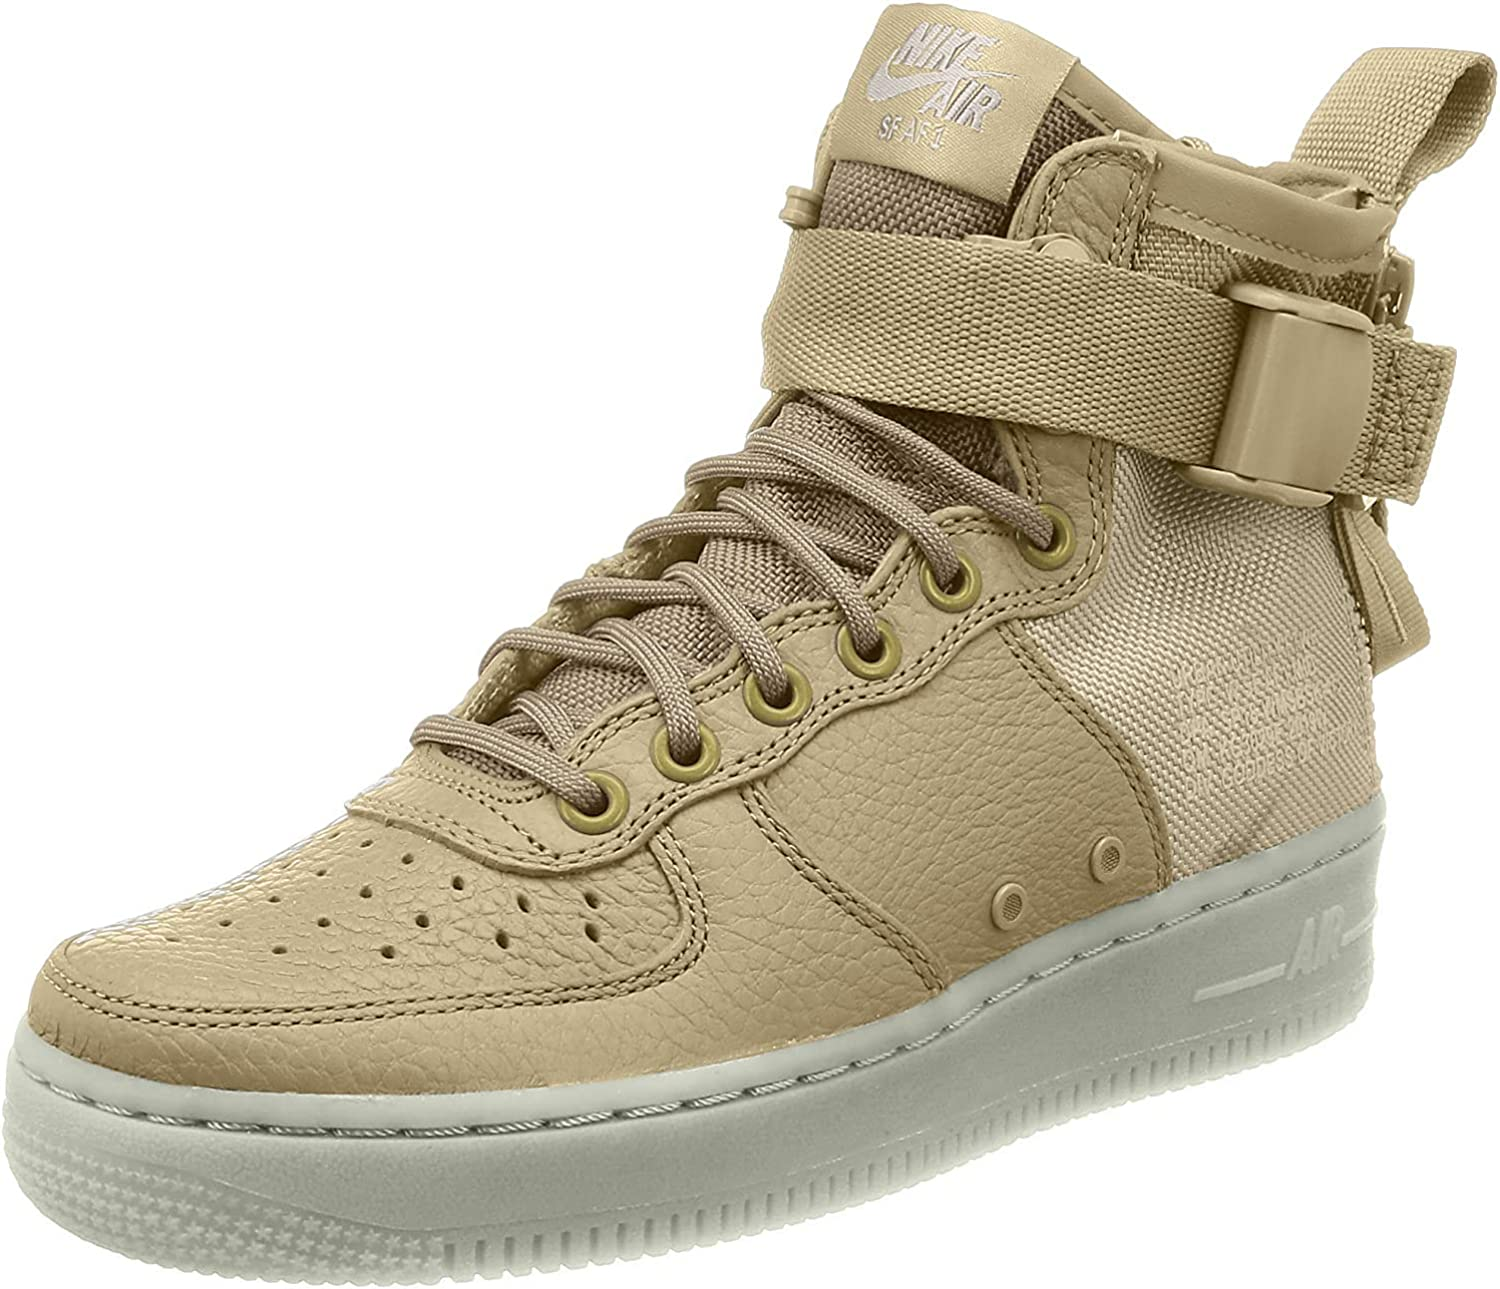 Nike Sf Af1 Mid Womens Style